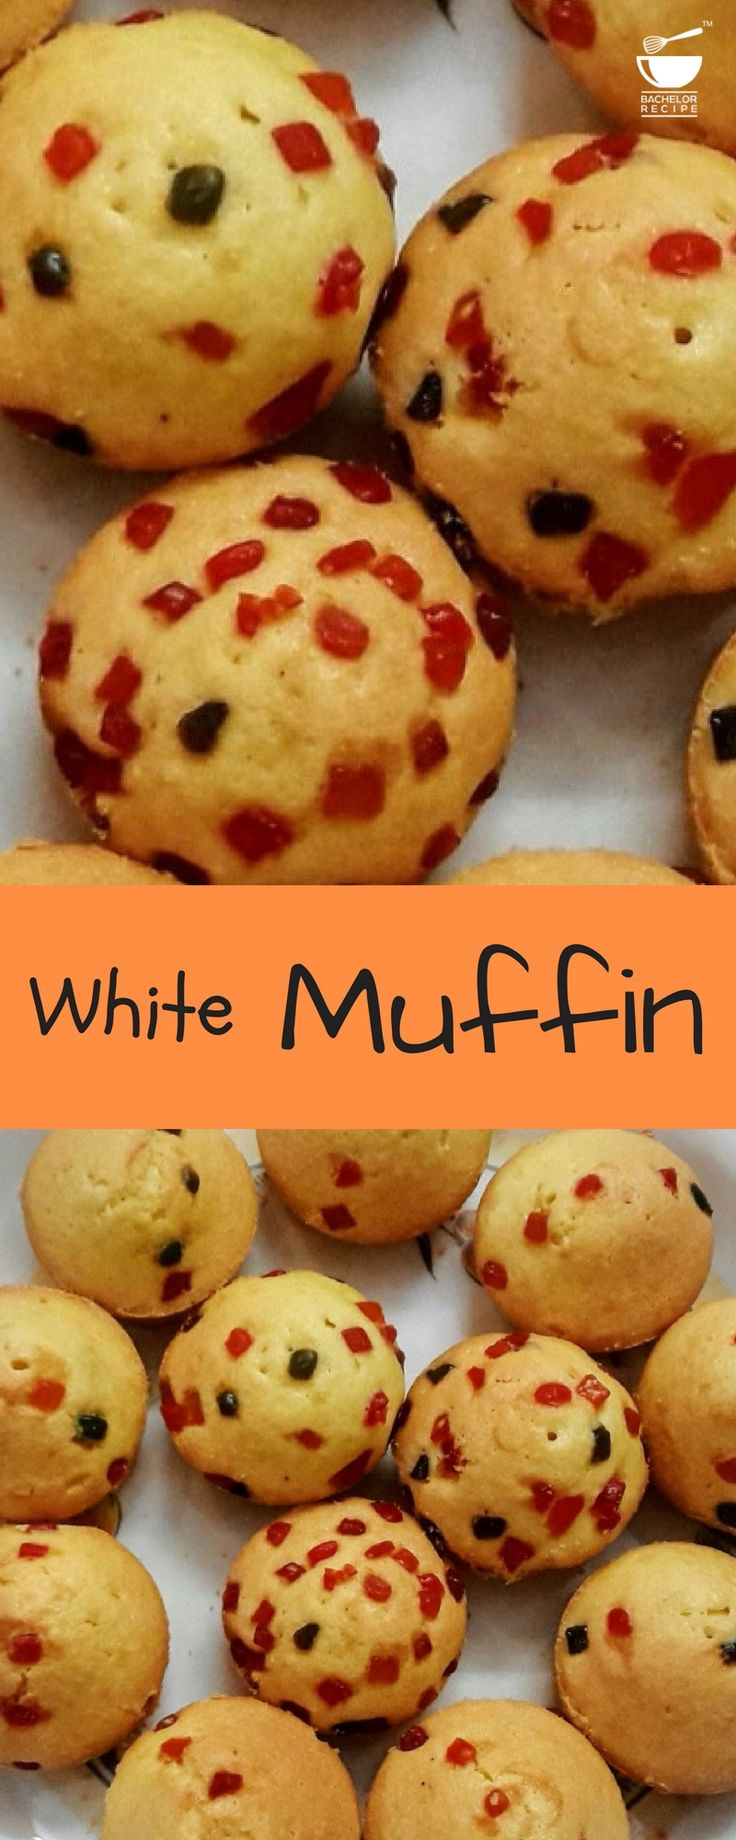 Moist, soft, easy and healthier than most other muffins, Muffin topped with tutti-frutti.